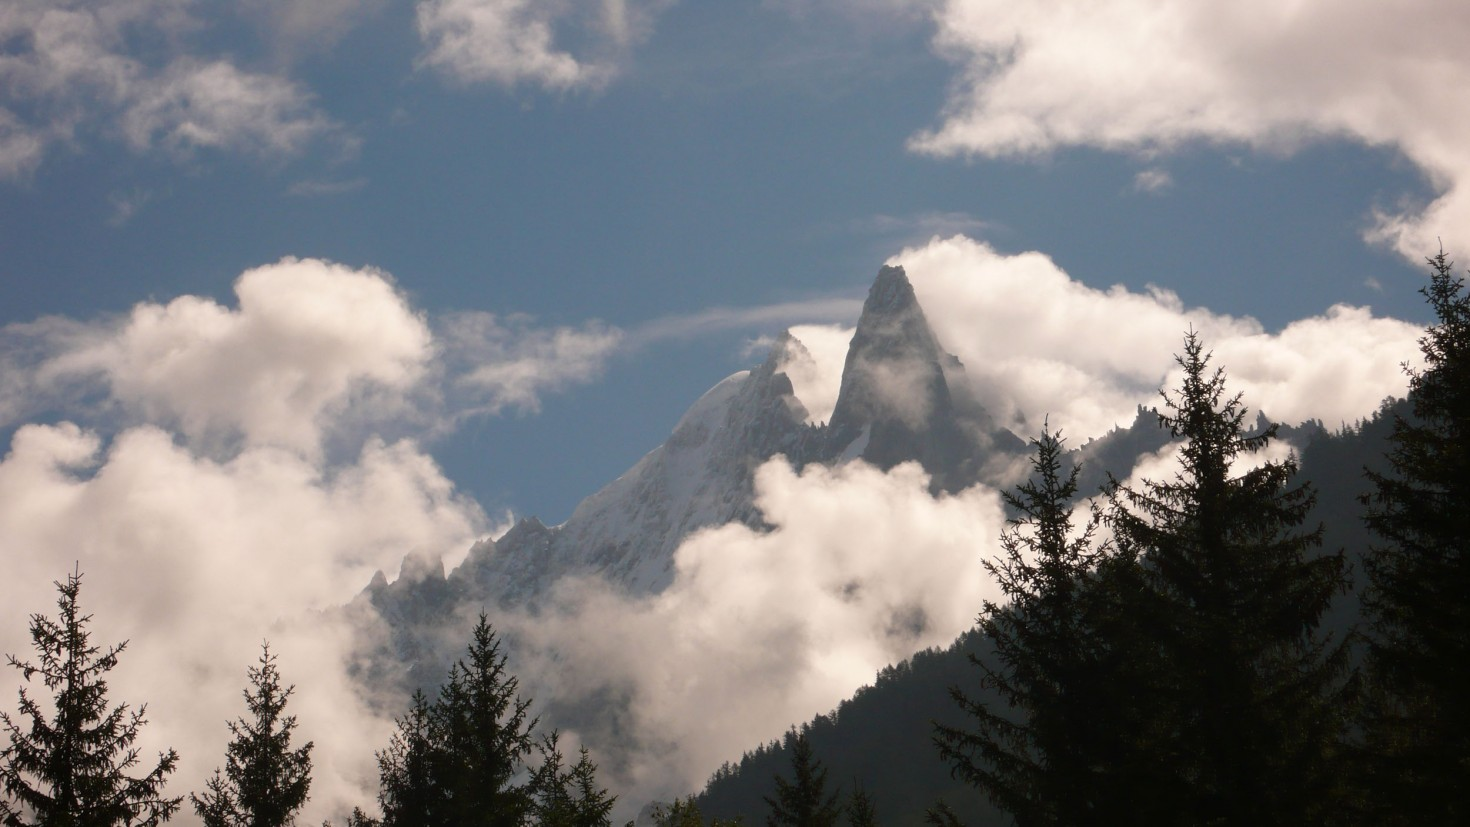 Clouds swirling around The Dru, seen from the balcony